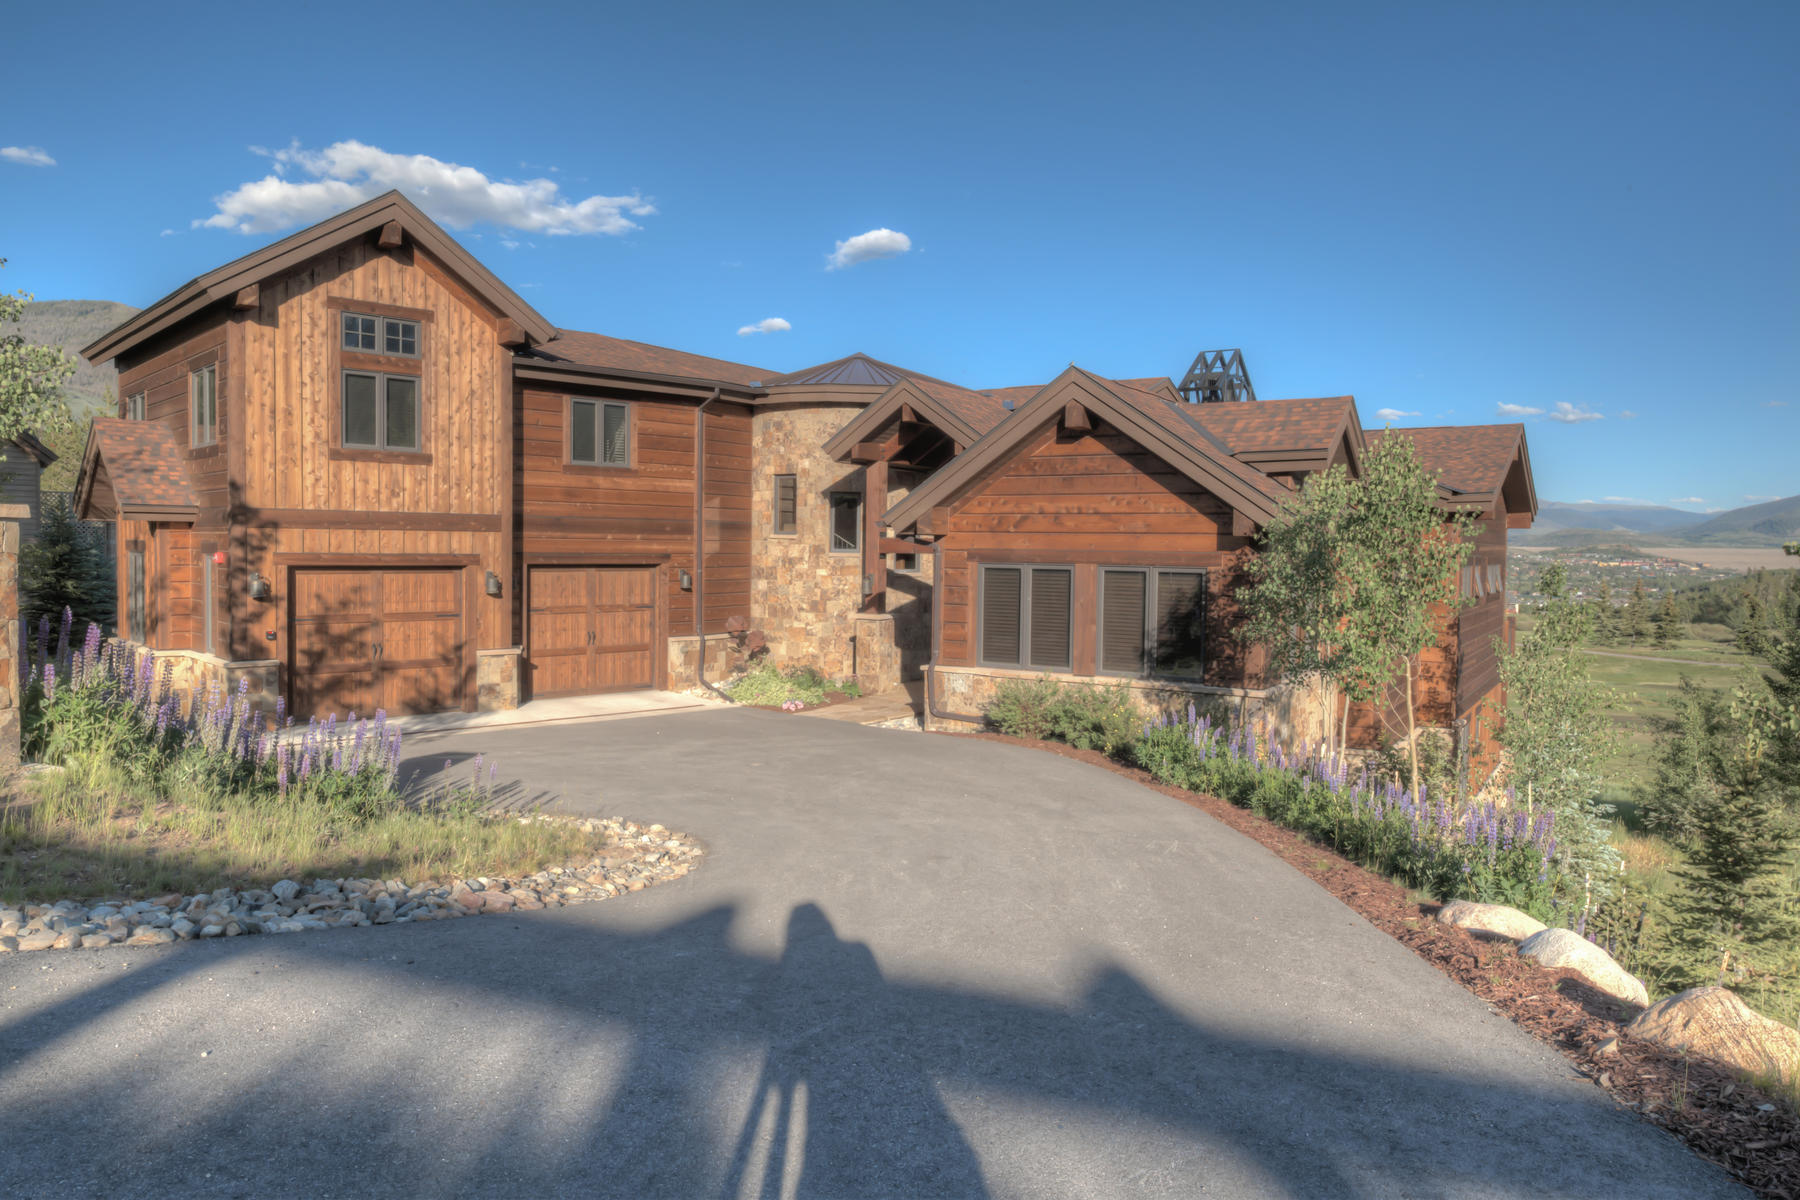 Single Family Homes for Sale at Beautiful Luxury Home in Raven at Three Peaks 755 Golden Eagle Road, Silverthorne, Colorado 80498 United States